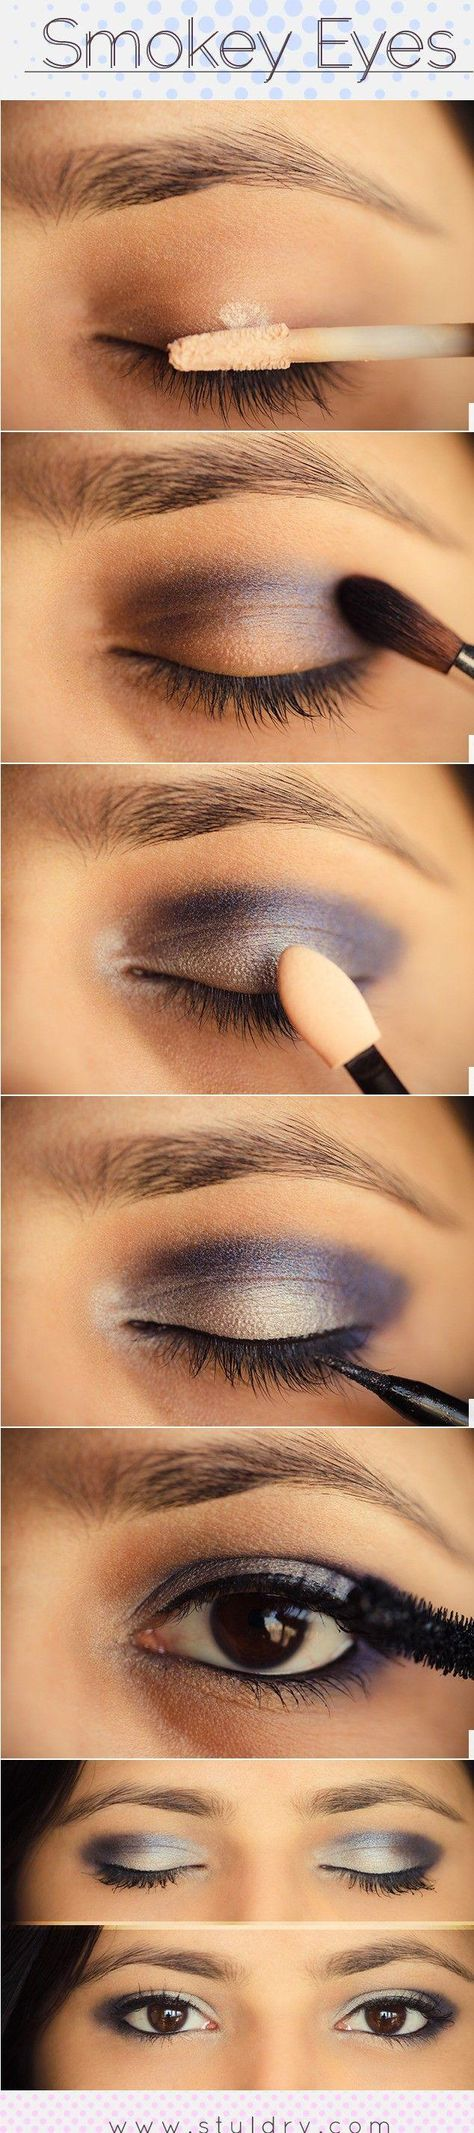 easy-to-do smokey eye